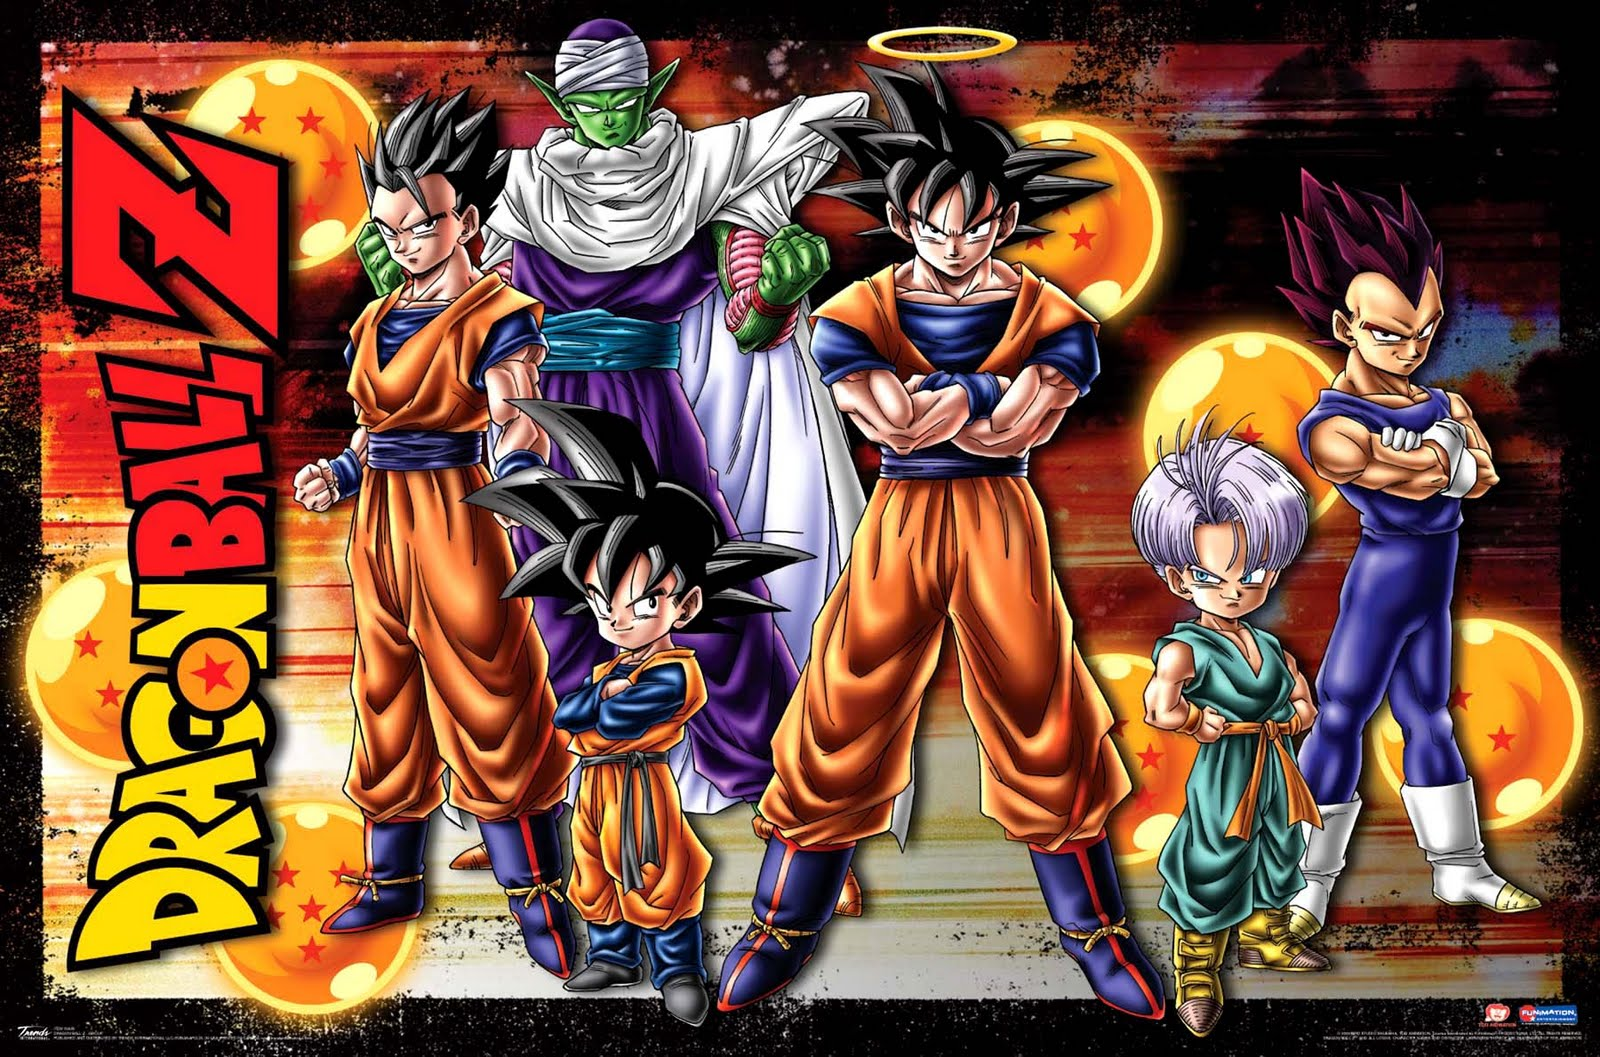 How to download dragon ball z kai episodes for free without music.